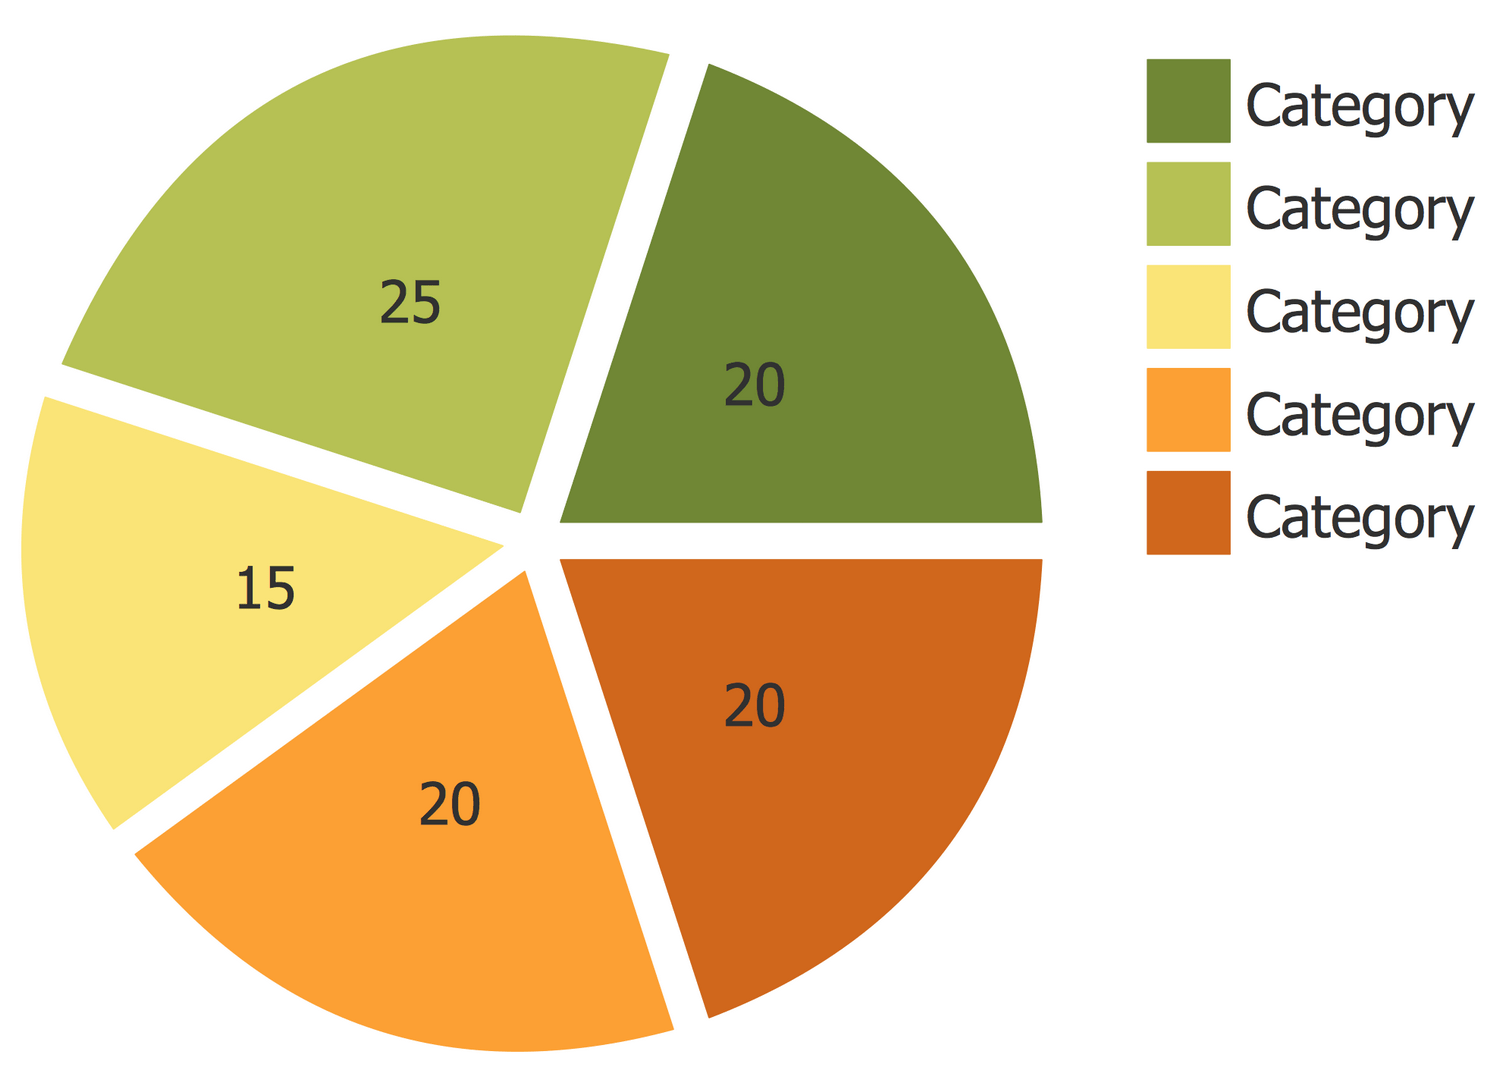 Basic Pie Charts Solution